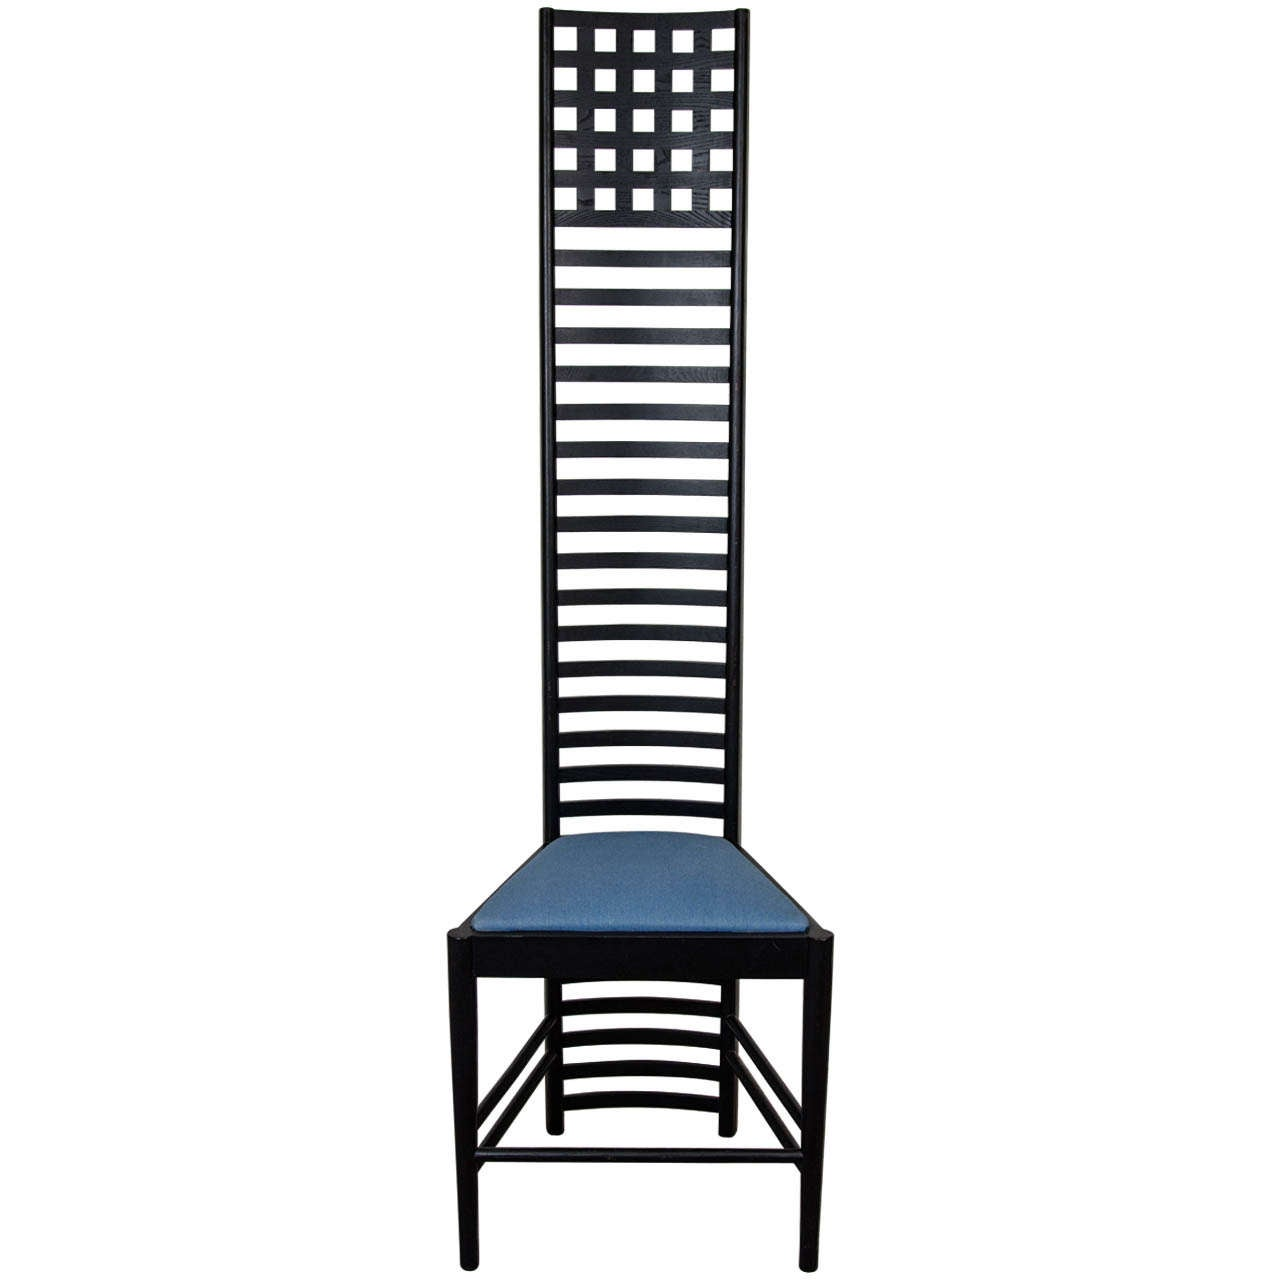 Charles rennie mackintosh hill house high back chair by cassina at